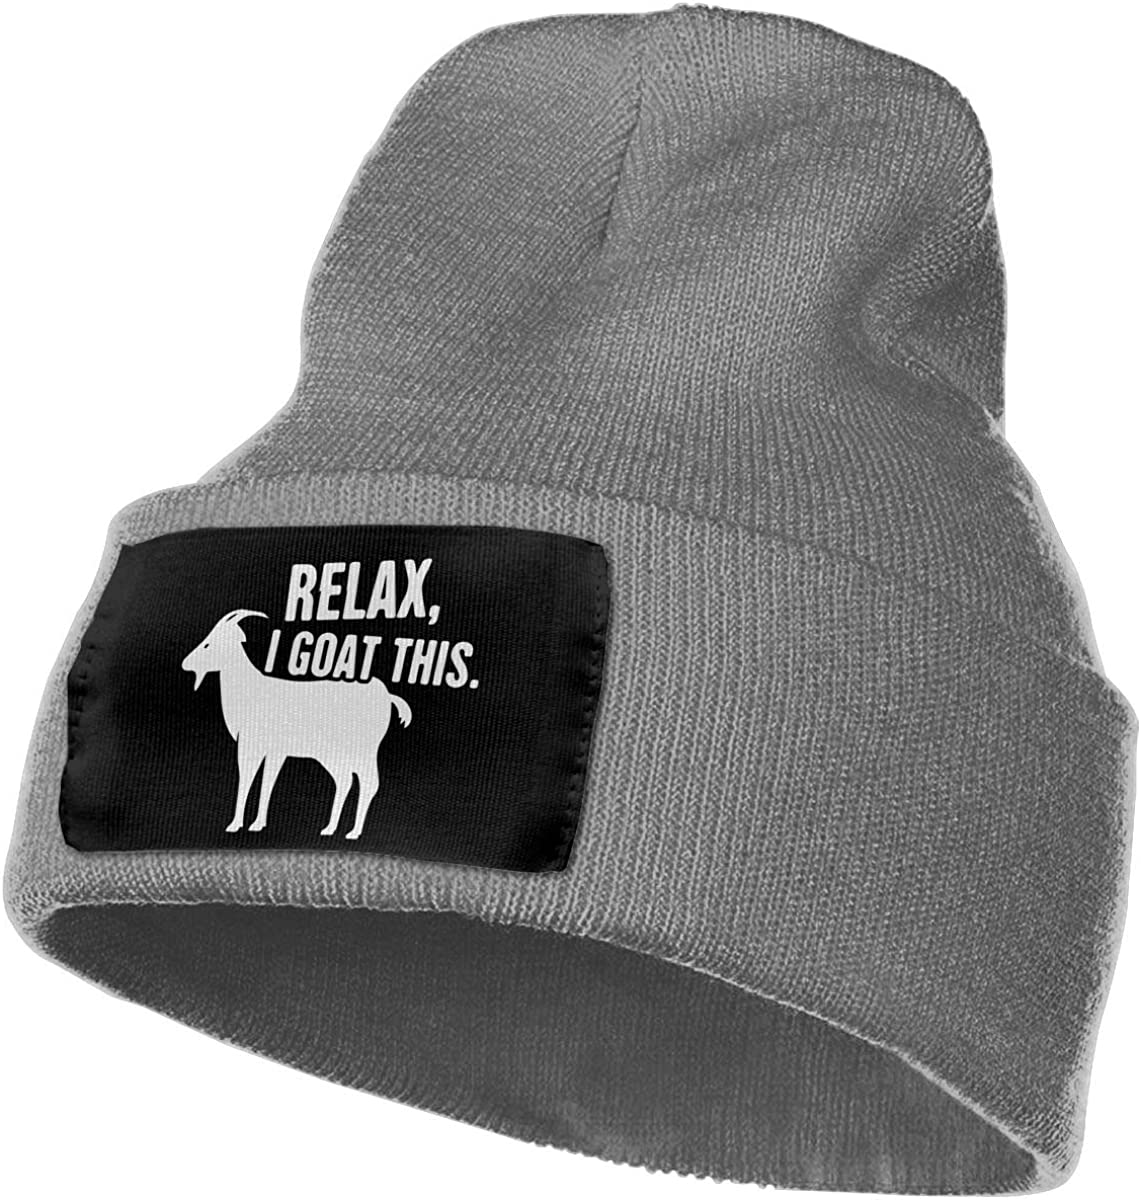 COLLJL-8 Men /& Women Relax I Goat This Outdoor Warm Knit Beanies Hat Soft Winter Knit Caps